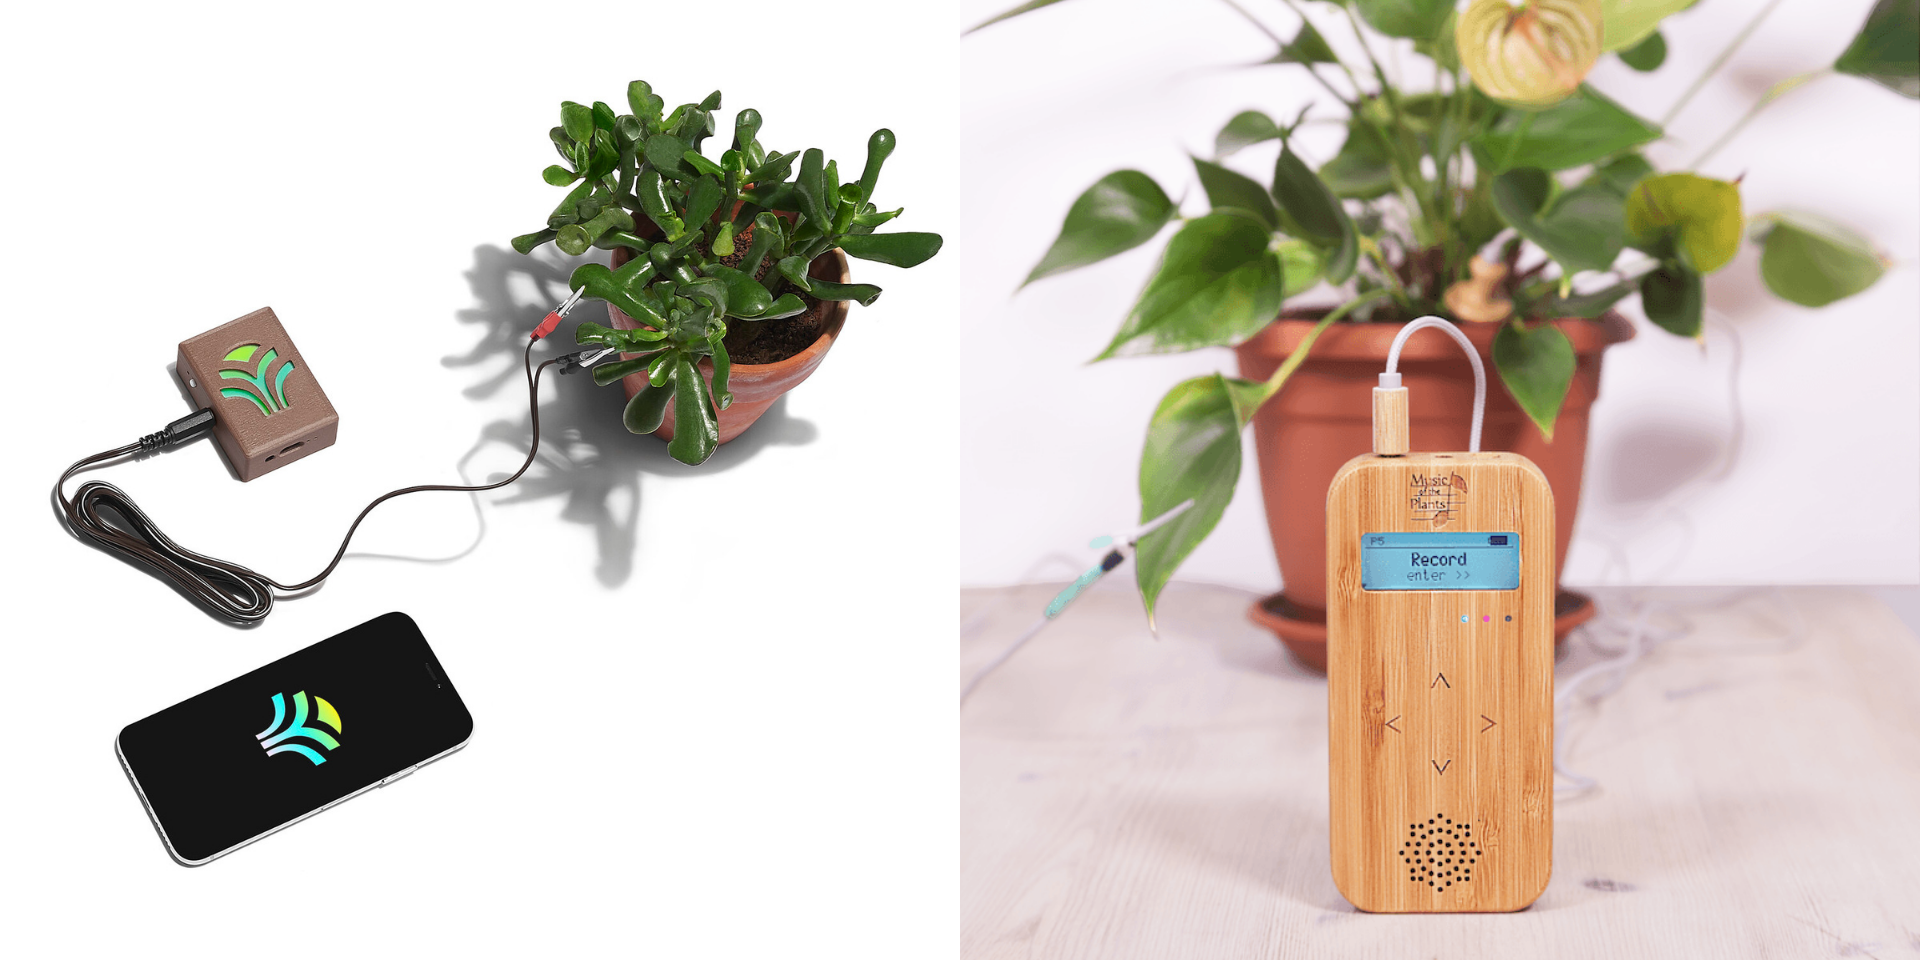 Tune in to nature by listening to music generated from your plants